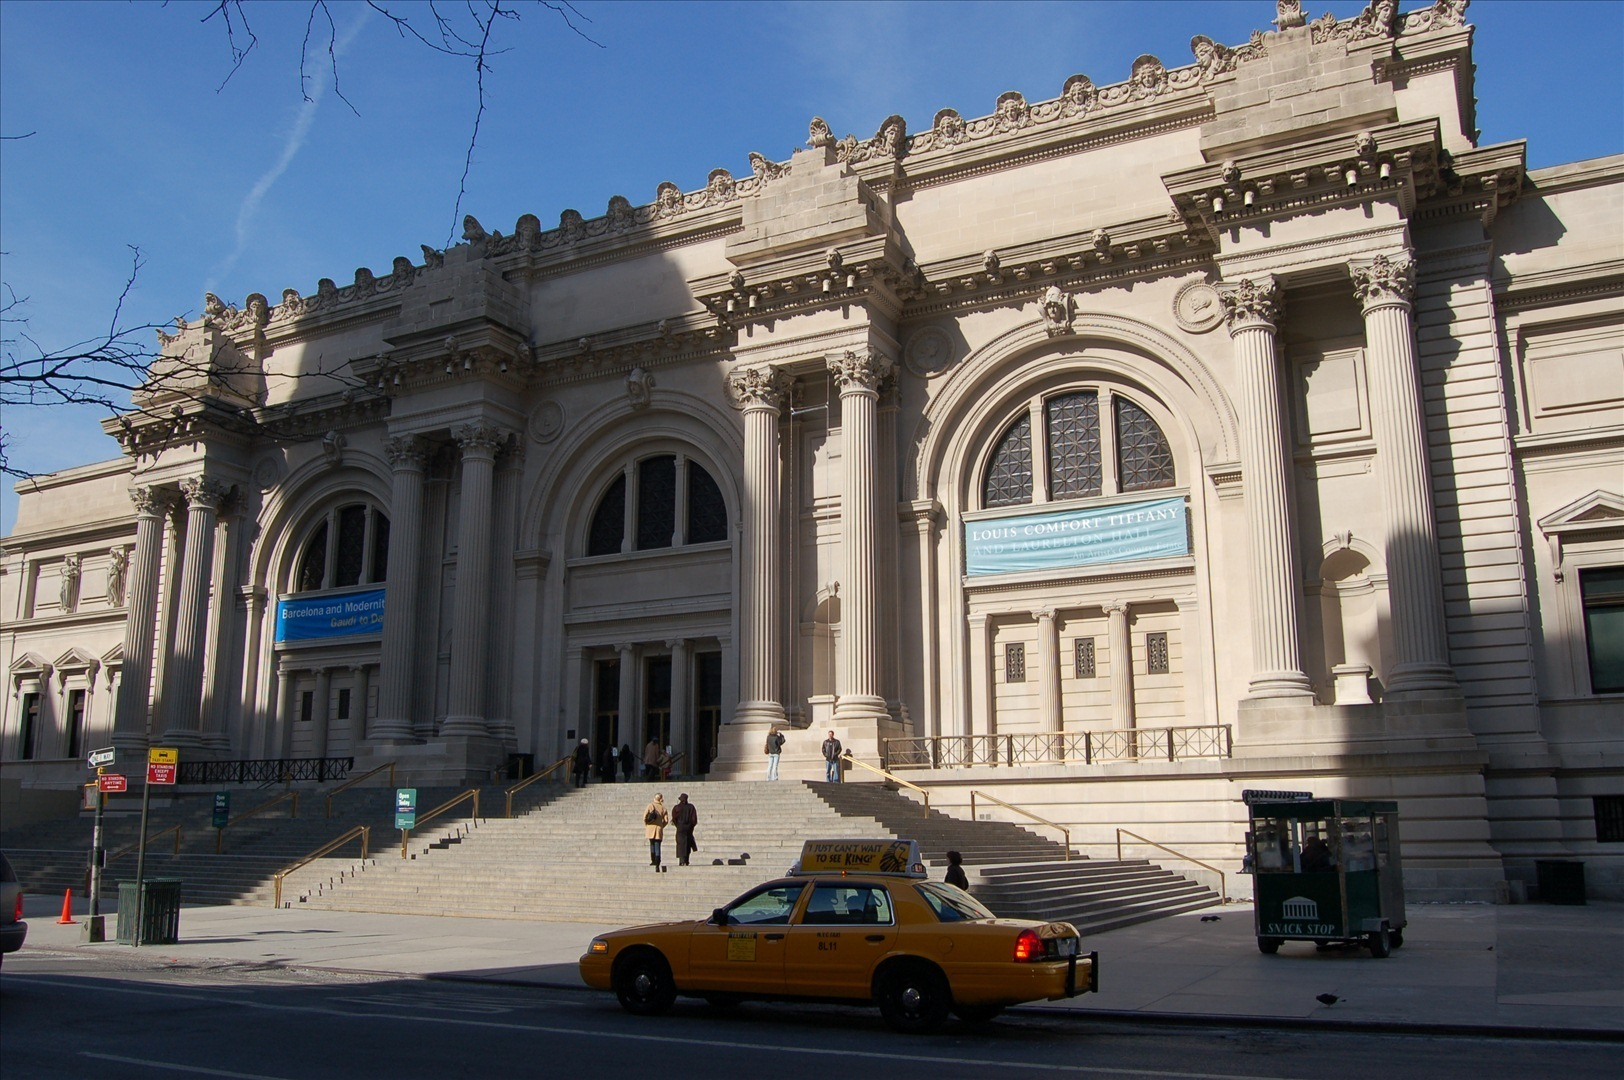 New york englisho aca for The metropolitan museum of art nyc